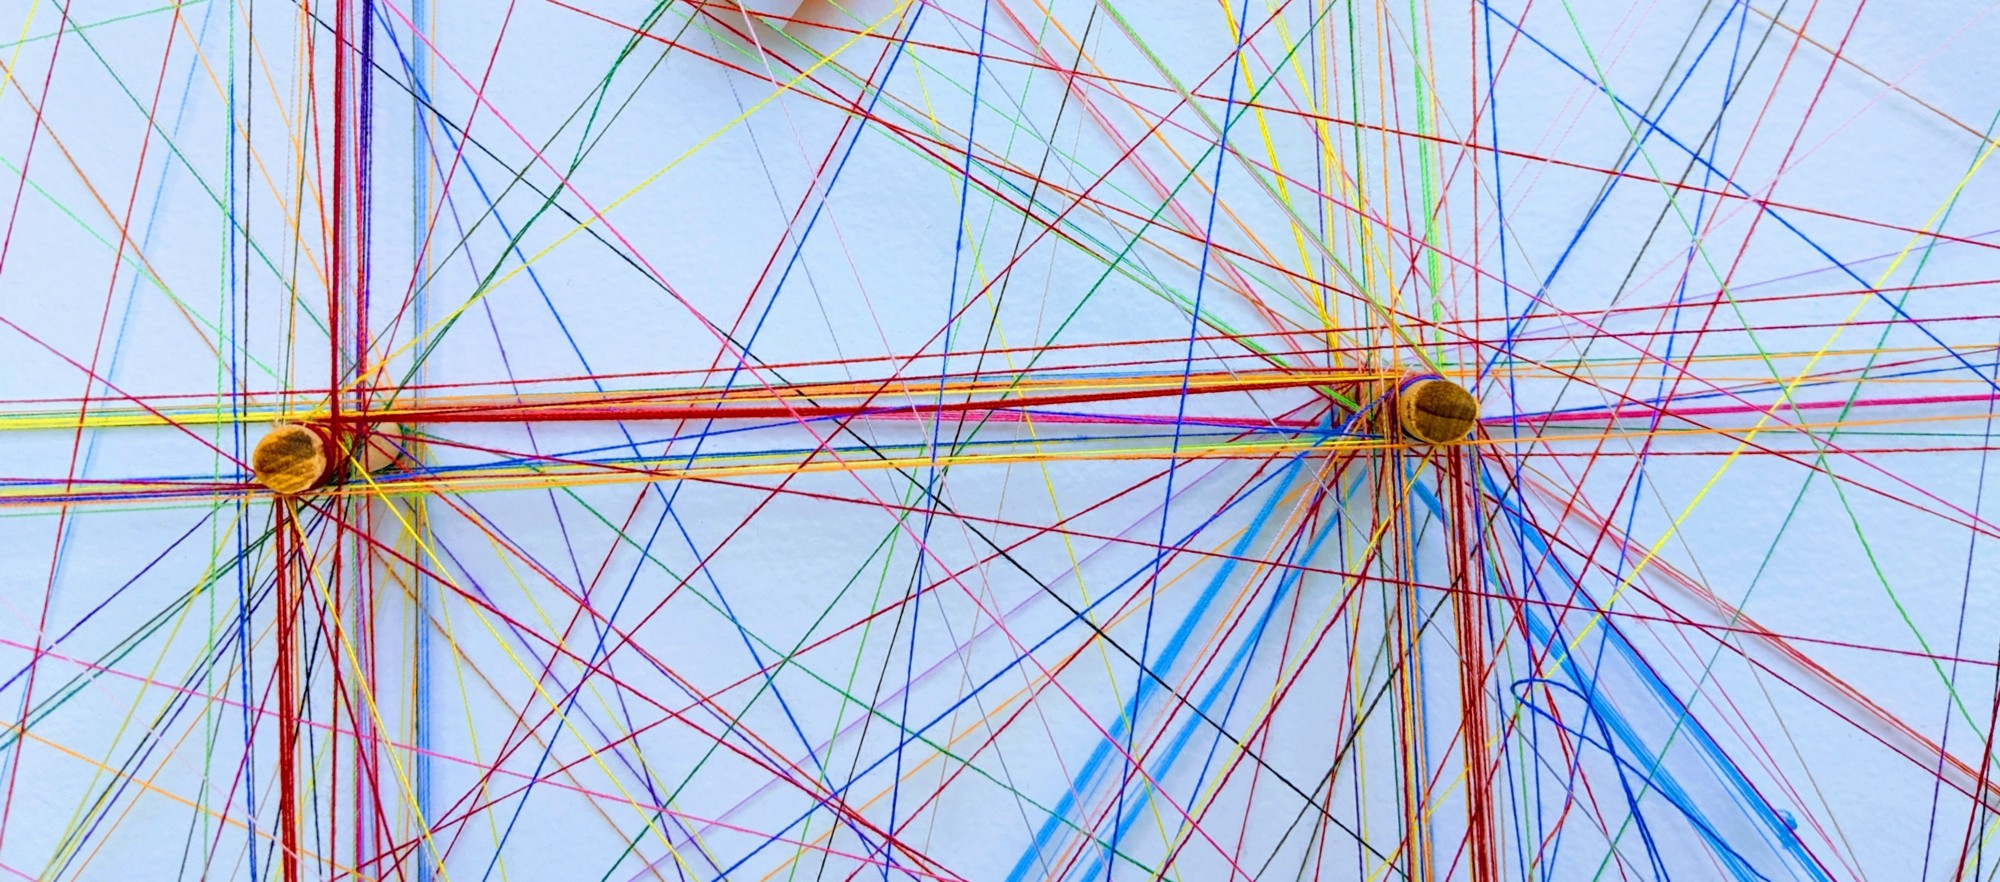 Coloured threads wound around spokes to form a network. Photo by Omar Flores on Unsplash